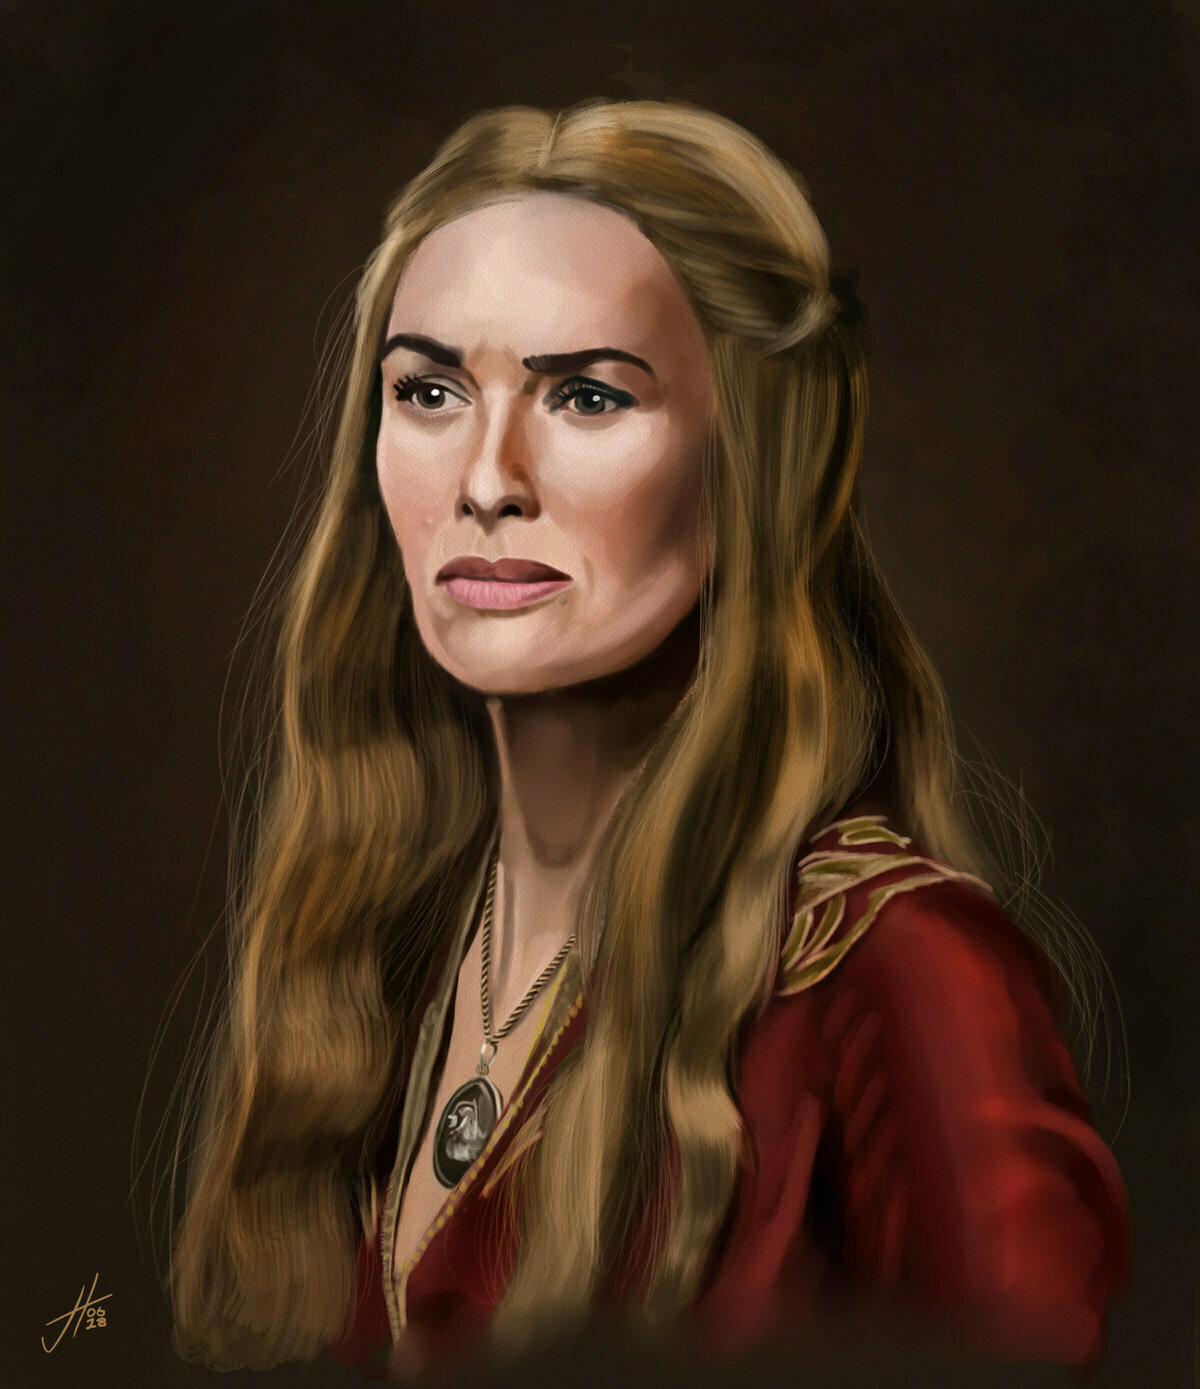 Game of Thrones Cersei Lannister Art Print